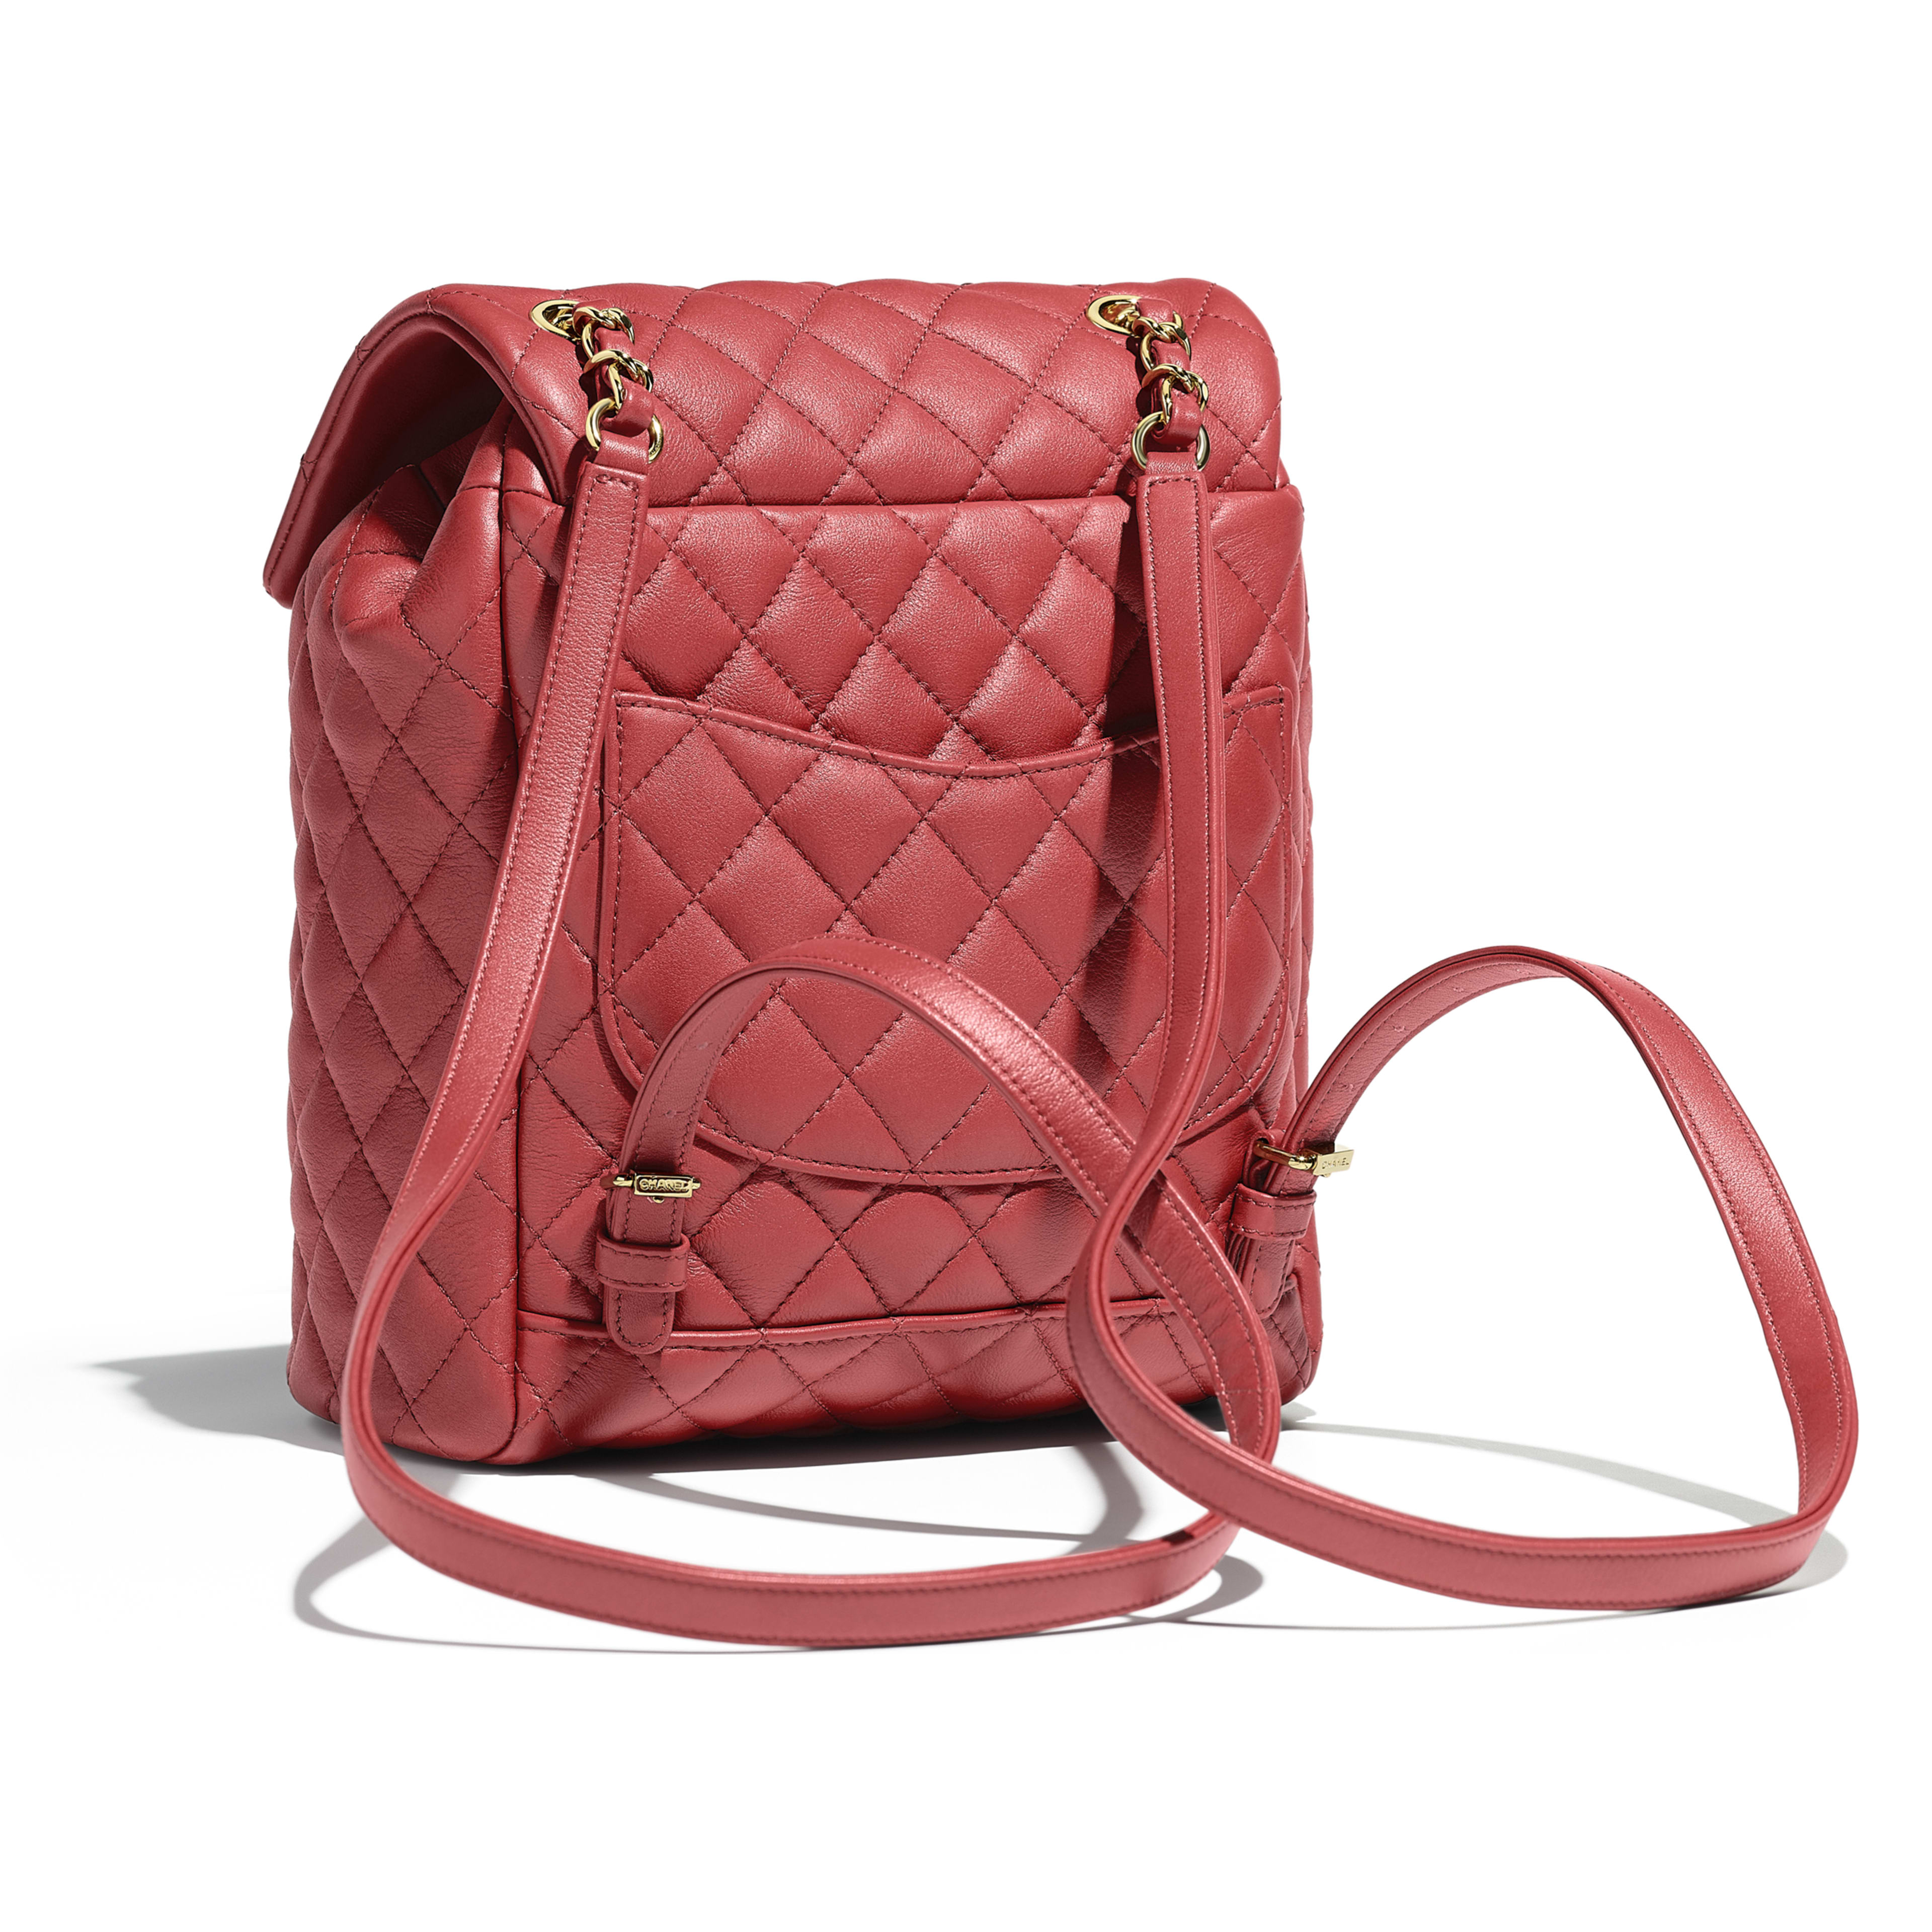 Backpack - Red - Calfskin & Gold-Tone Metal - Alternative view - see full sized version